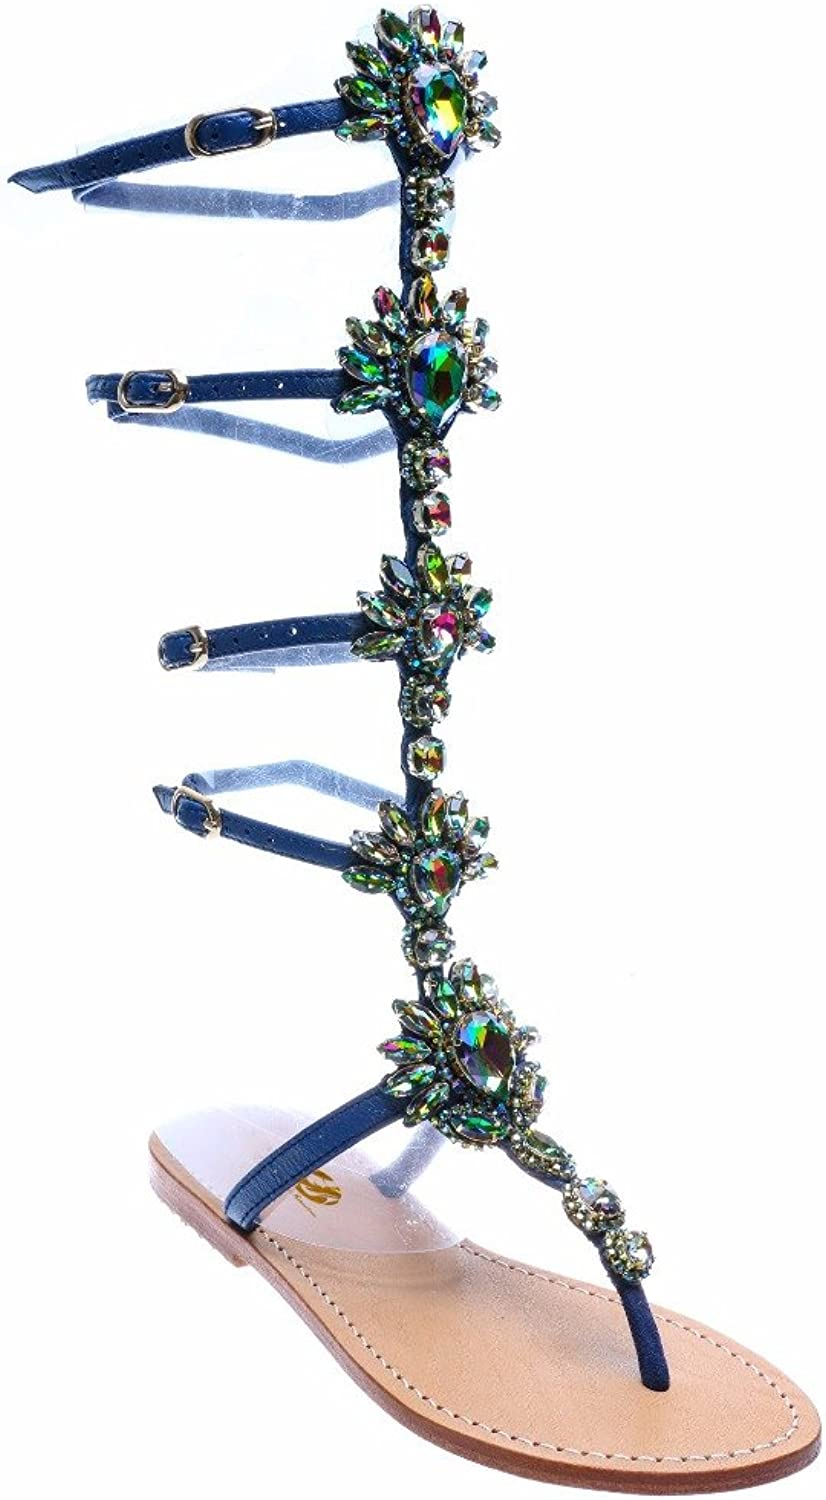 Original Intention Women Gladiator Sandals Fashion Rhinestone Open Toe Flats Popular Elegant bluee gold shoes